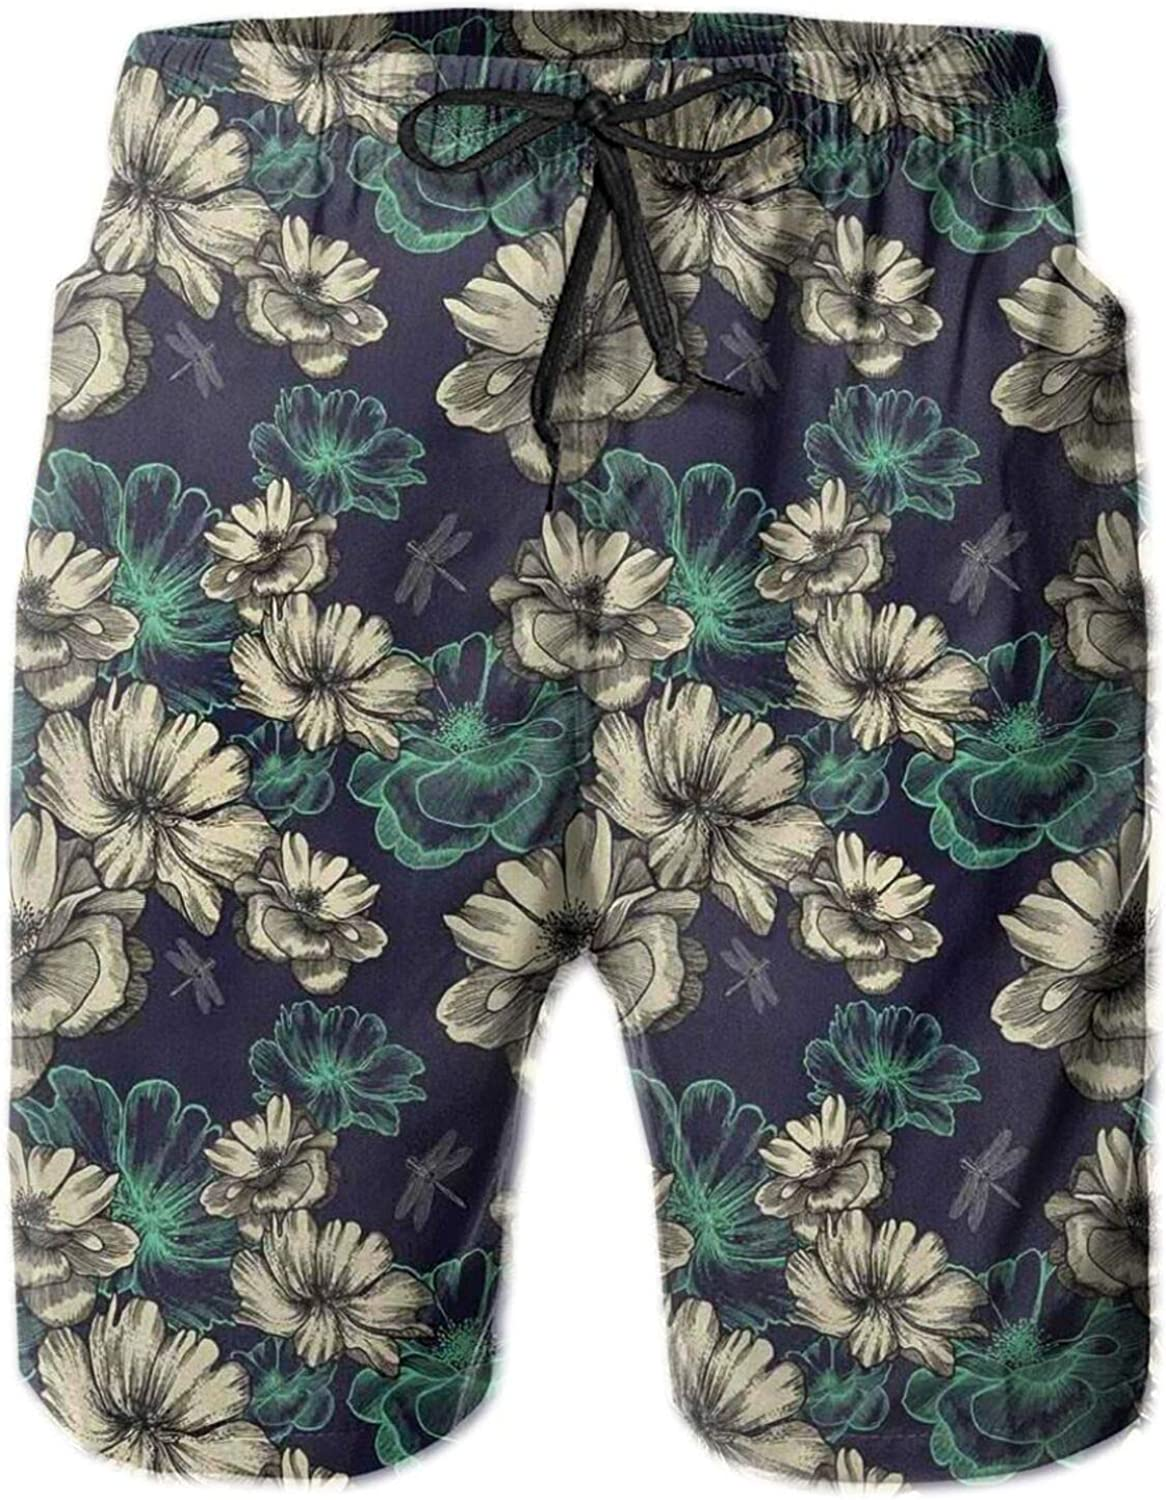 MUJAQ Pattern with Blooming Wild Flowers and Dragonflies Romantic Garden Swimming Trunks for Men Beach Shorts Casual Style,M